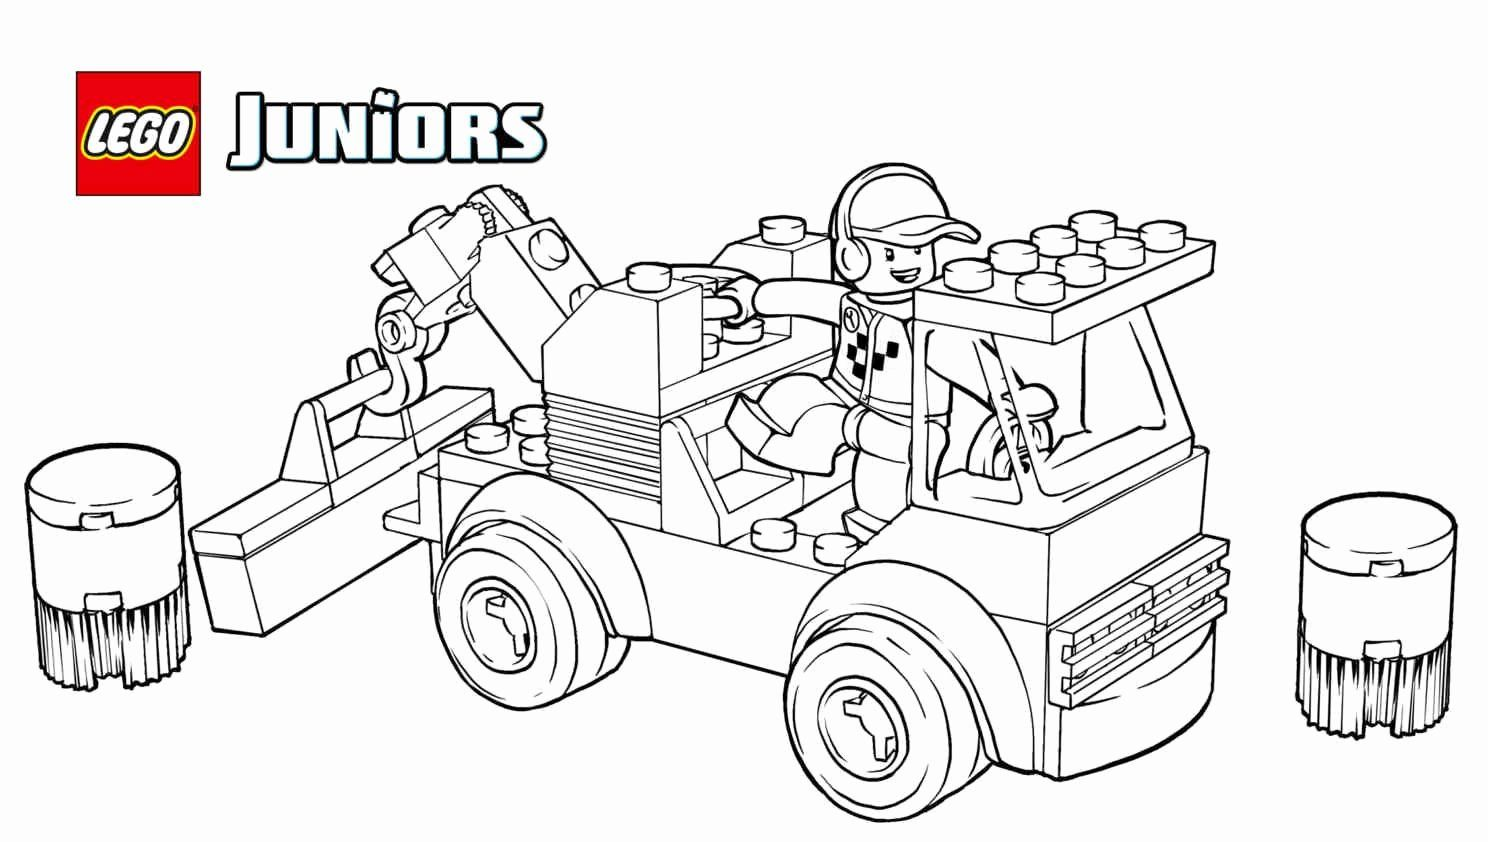 Garbage Truck Coloring Sheet Awesome Coloring Design Marvelous Tow Truck Coloring Pages In 2020 Truck Coloring Pages Coloring Sheets Coloring Pages